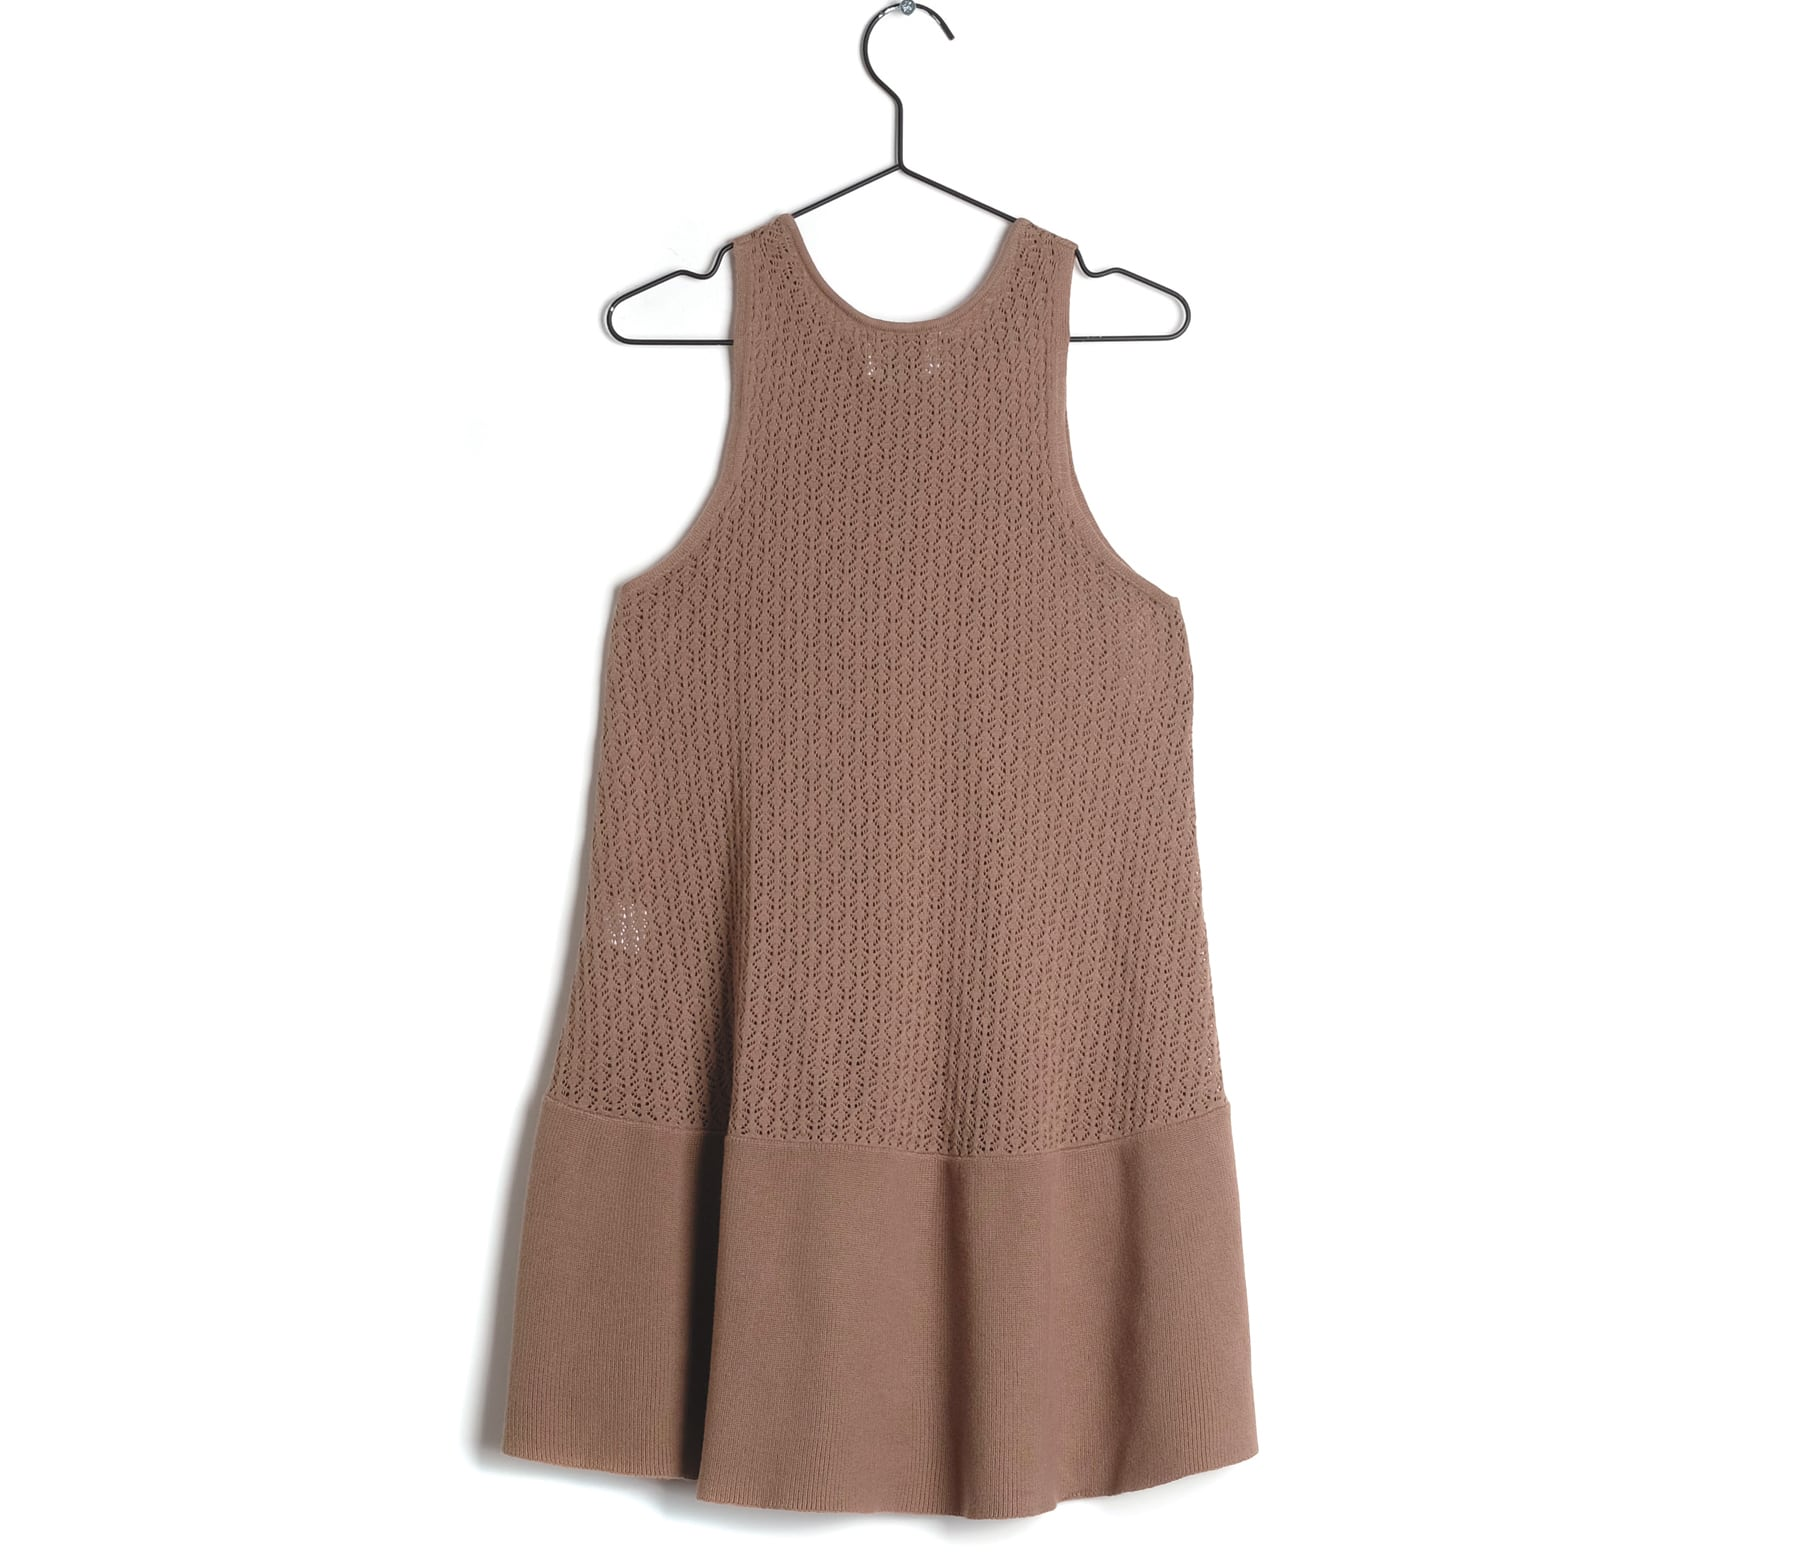 Wolf & Rita Andreia Dress - Chestnut